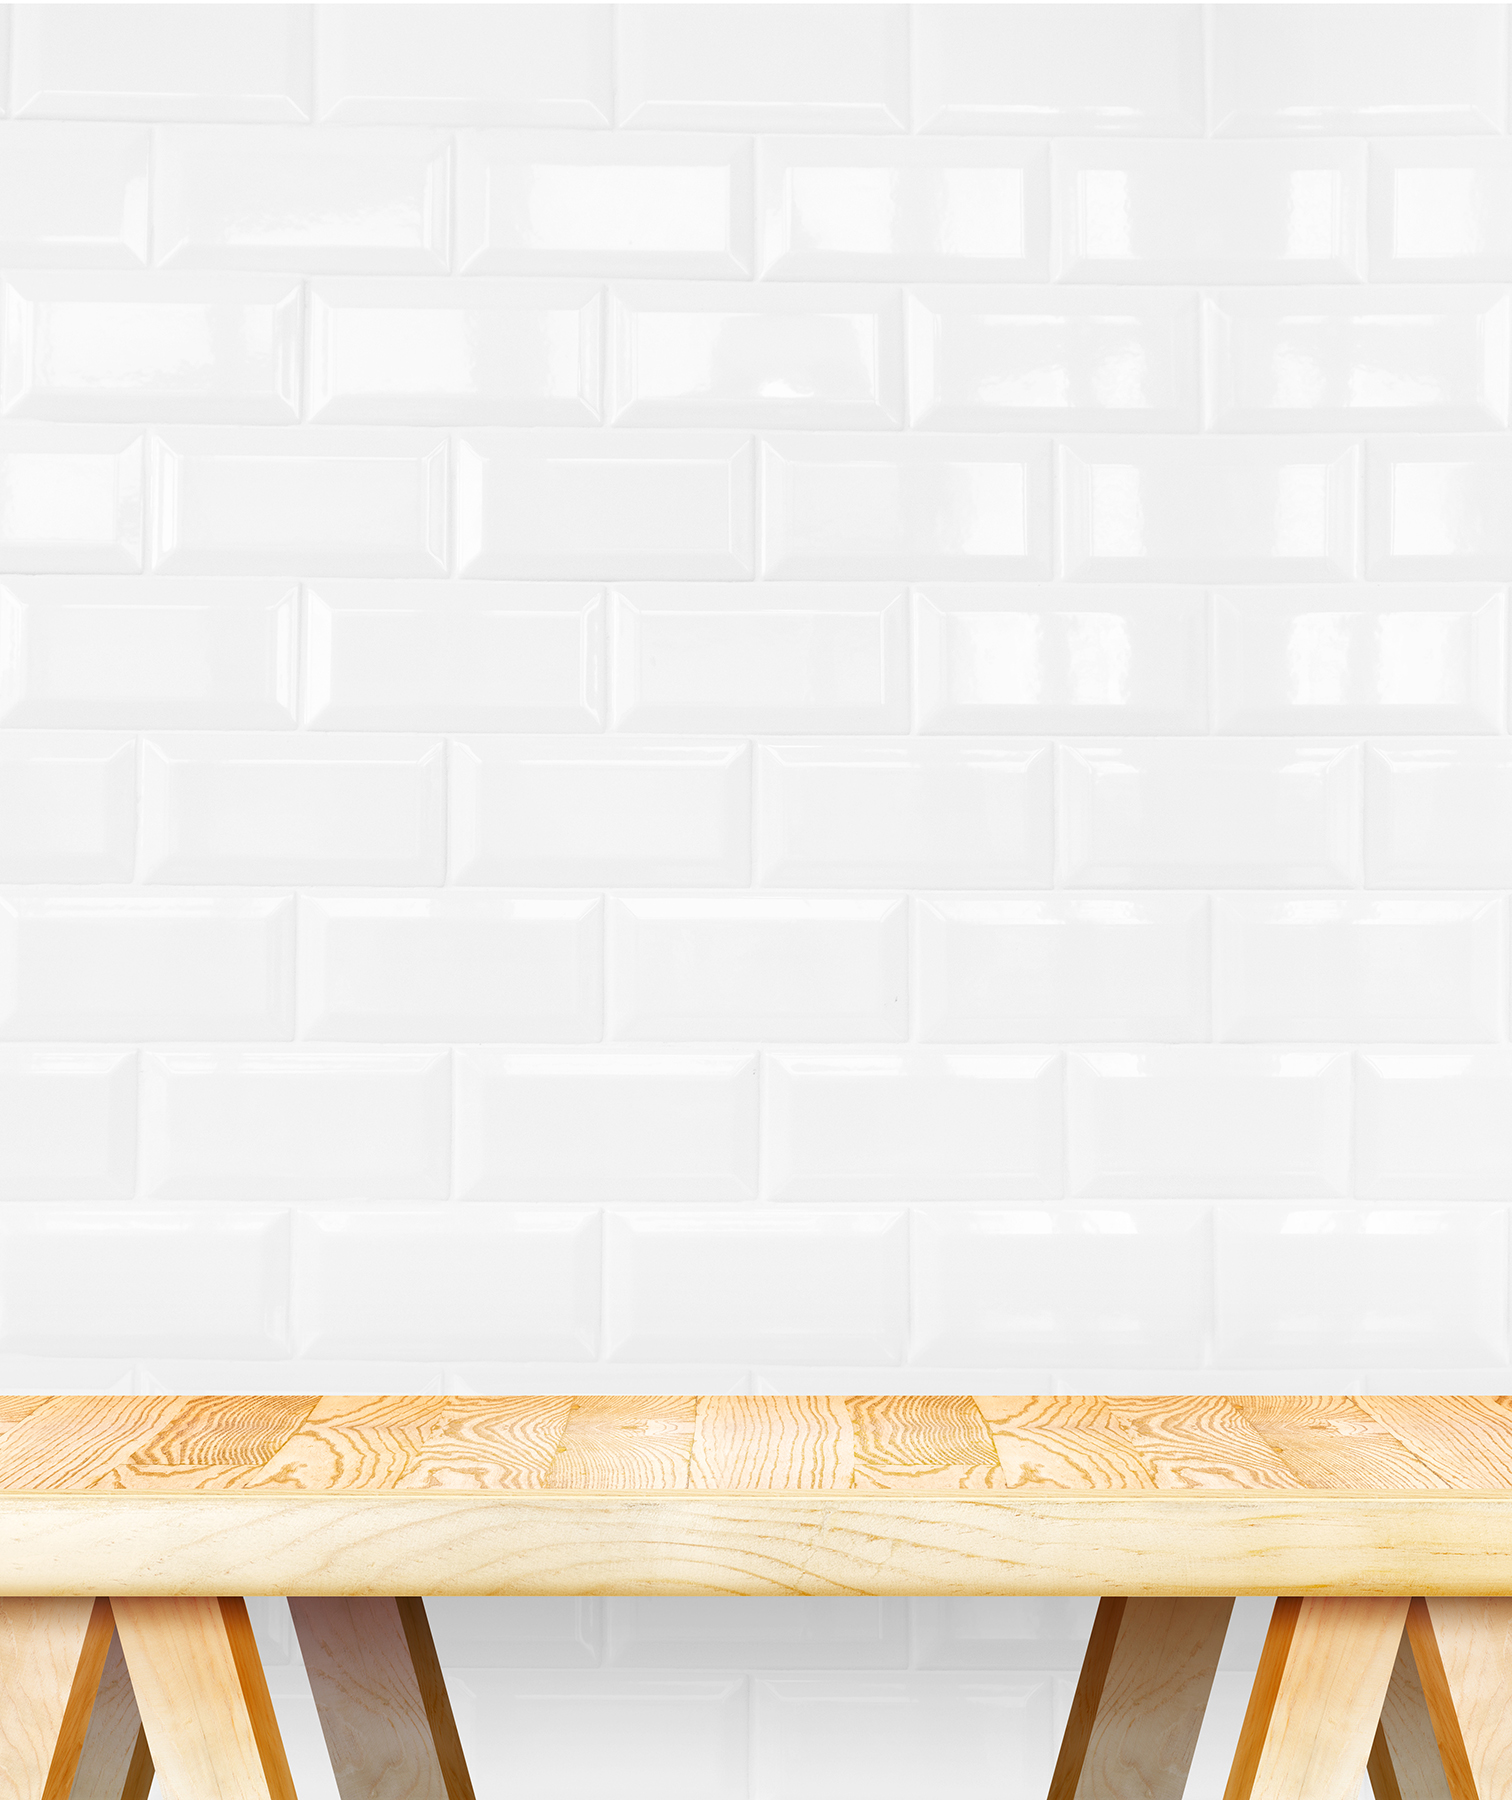 Bench in front of white ceramic tiles